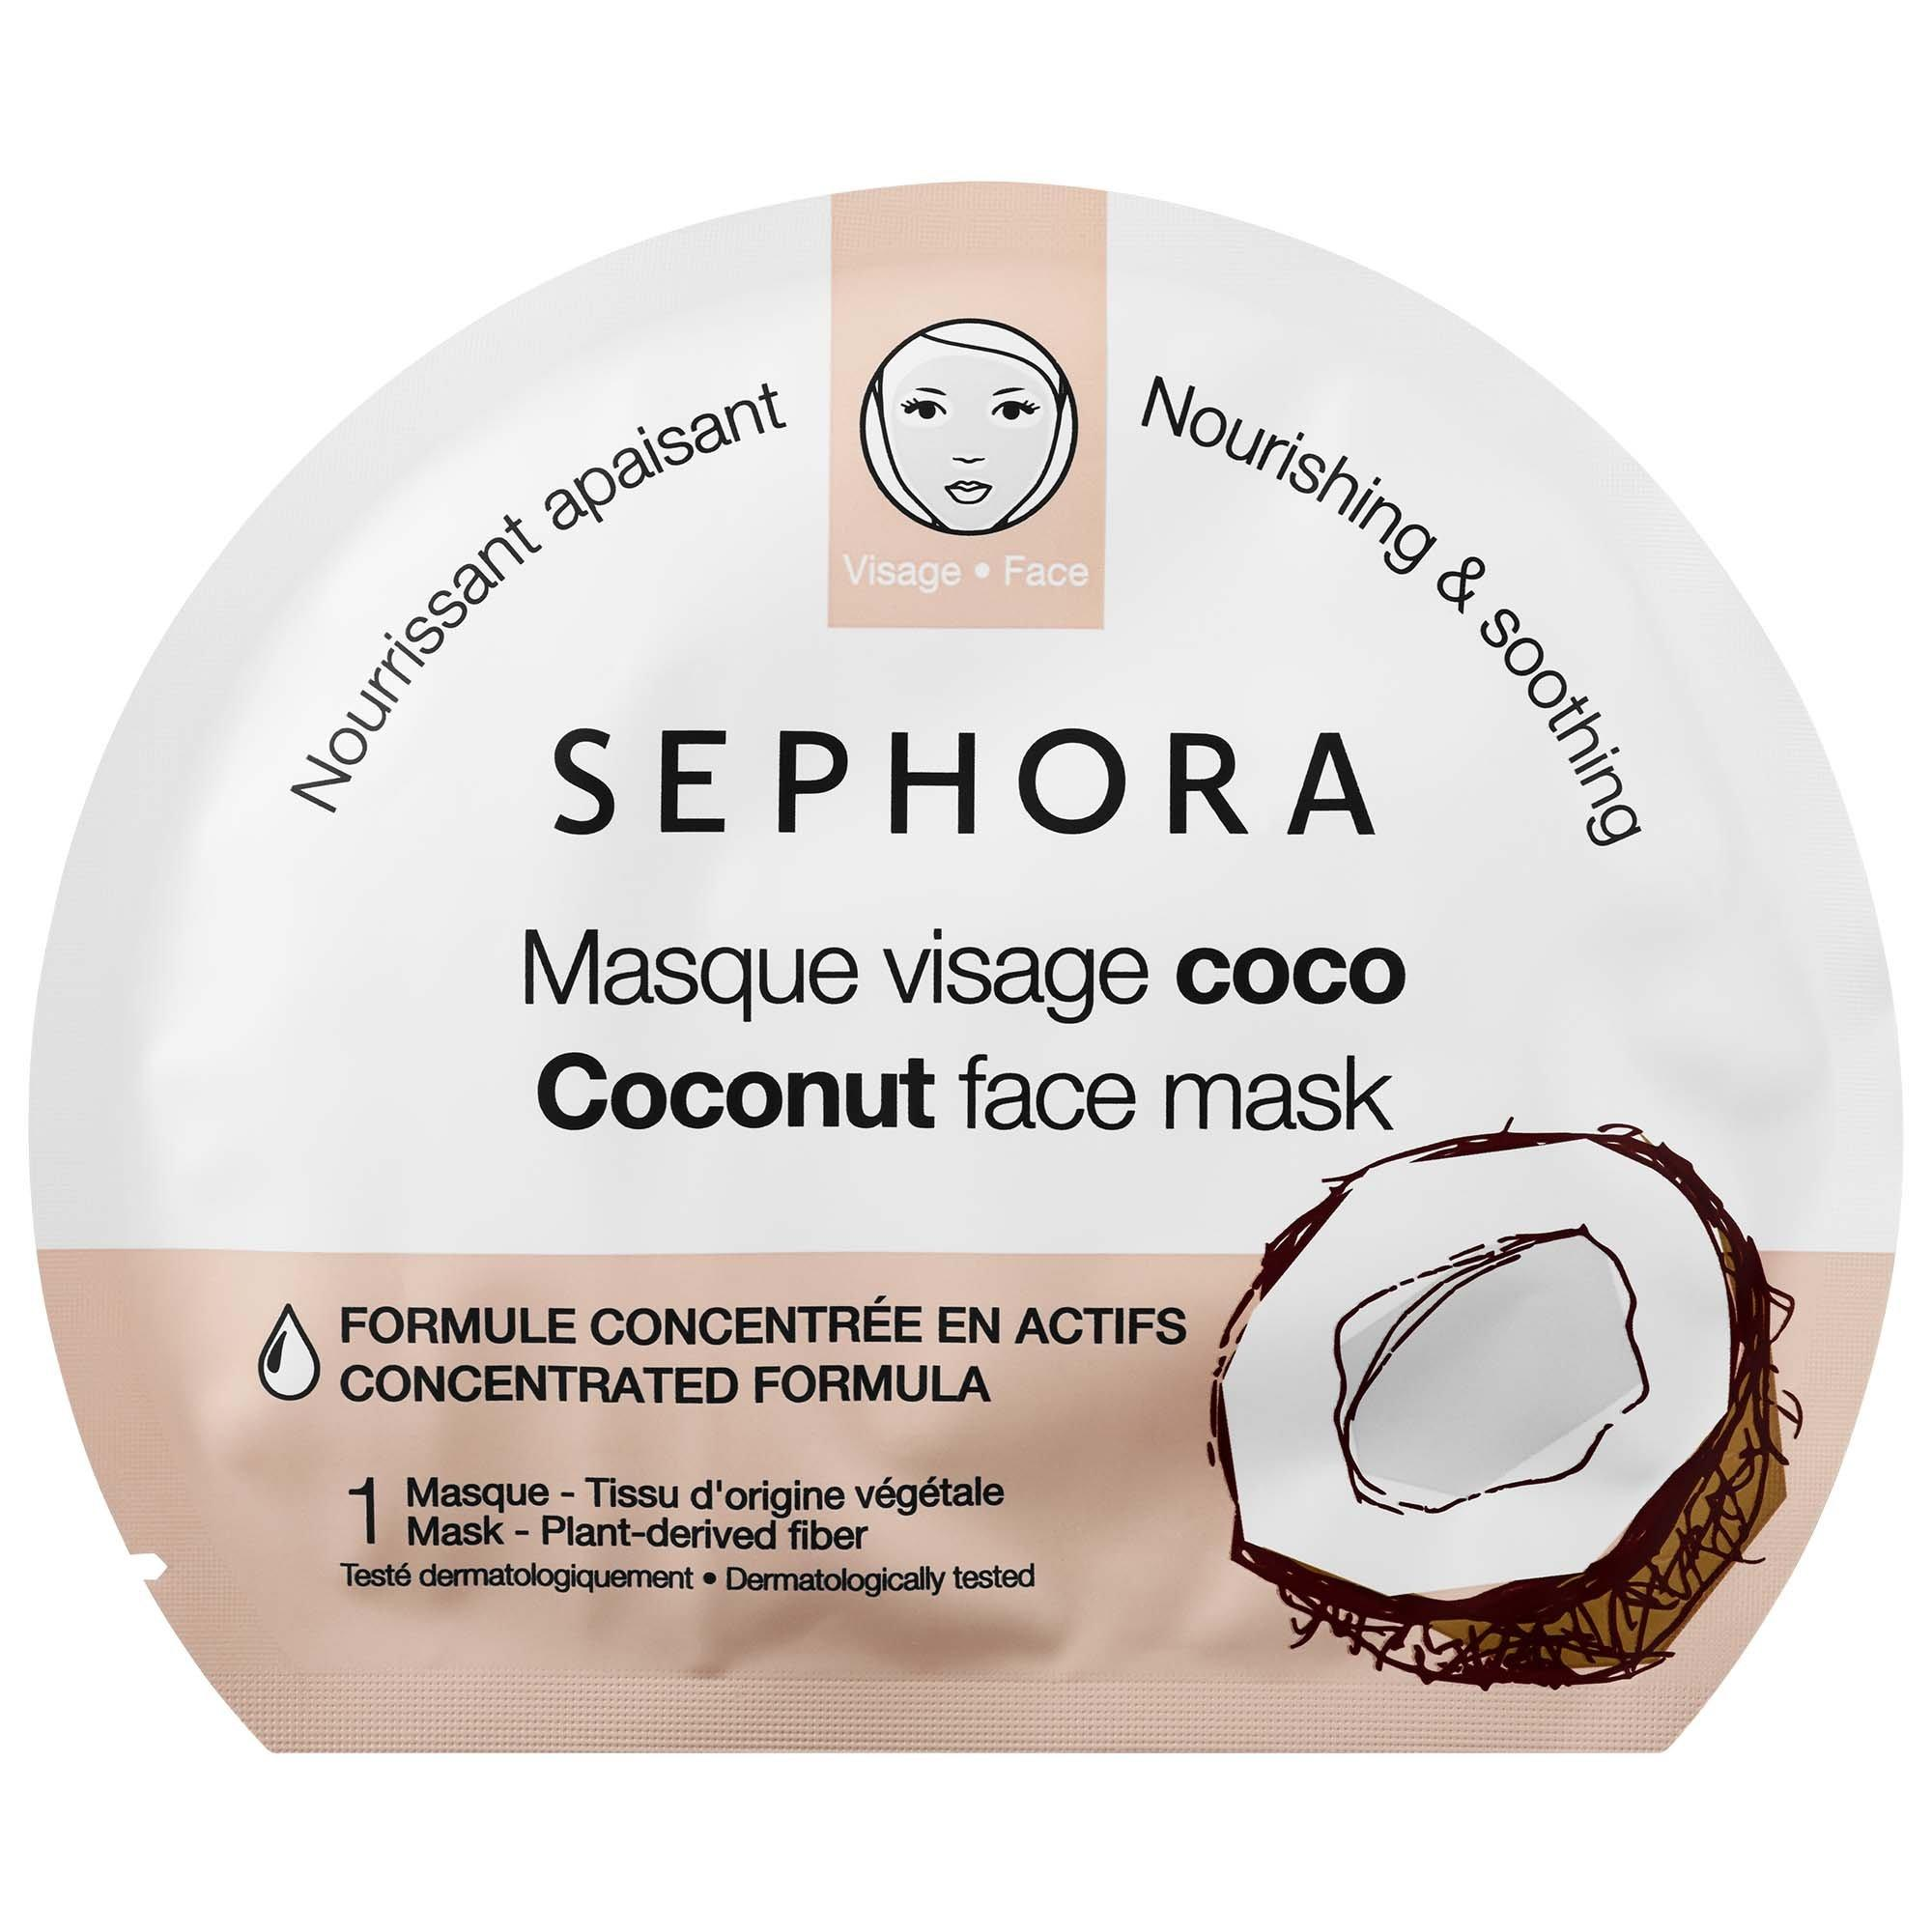 Sephora Is Giving Away Sheet Masks For F-R-E-E - and We Can Hook You Up